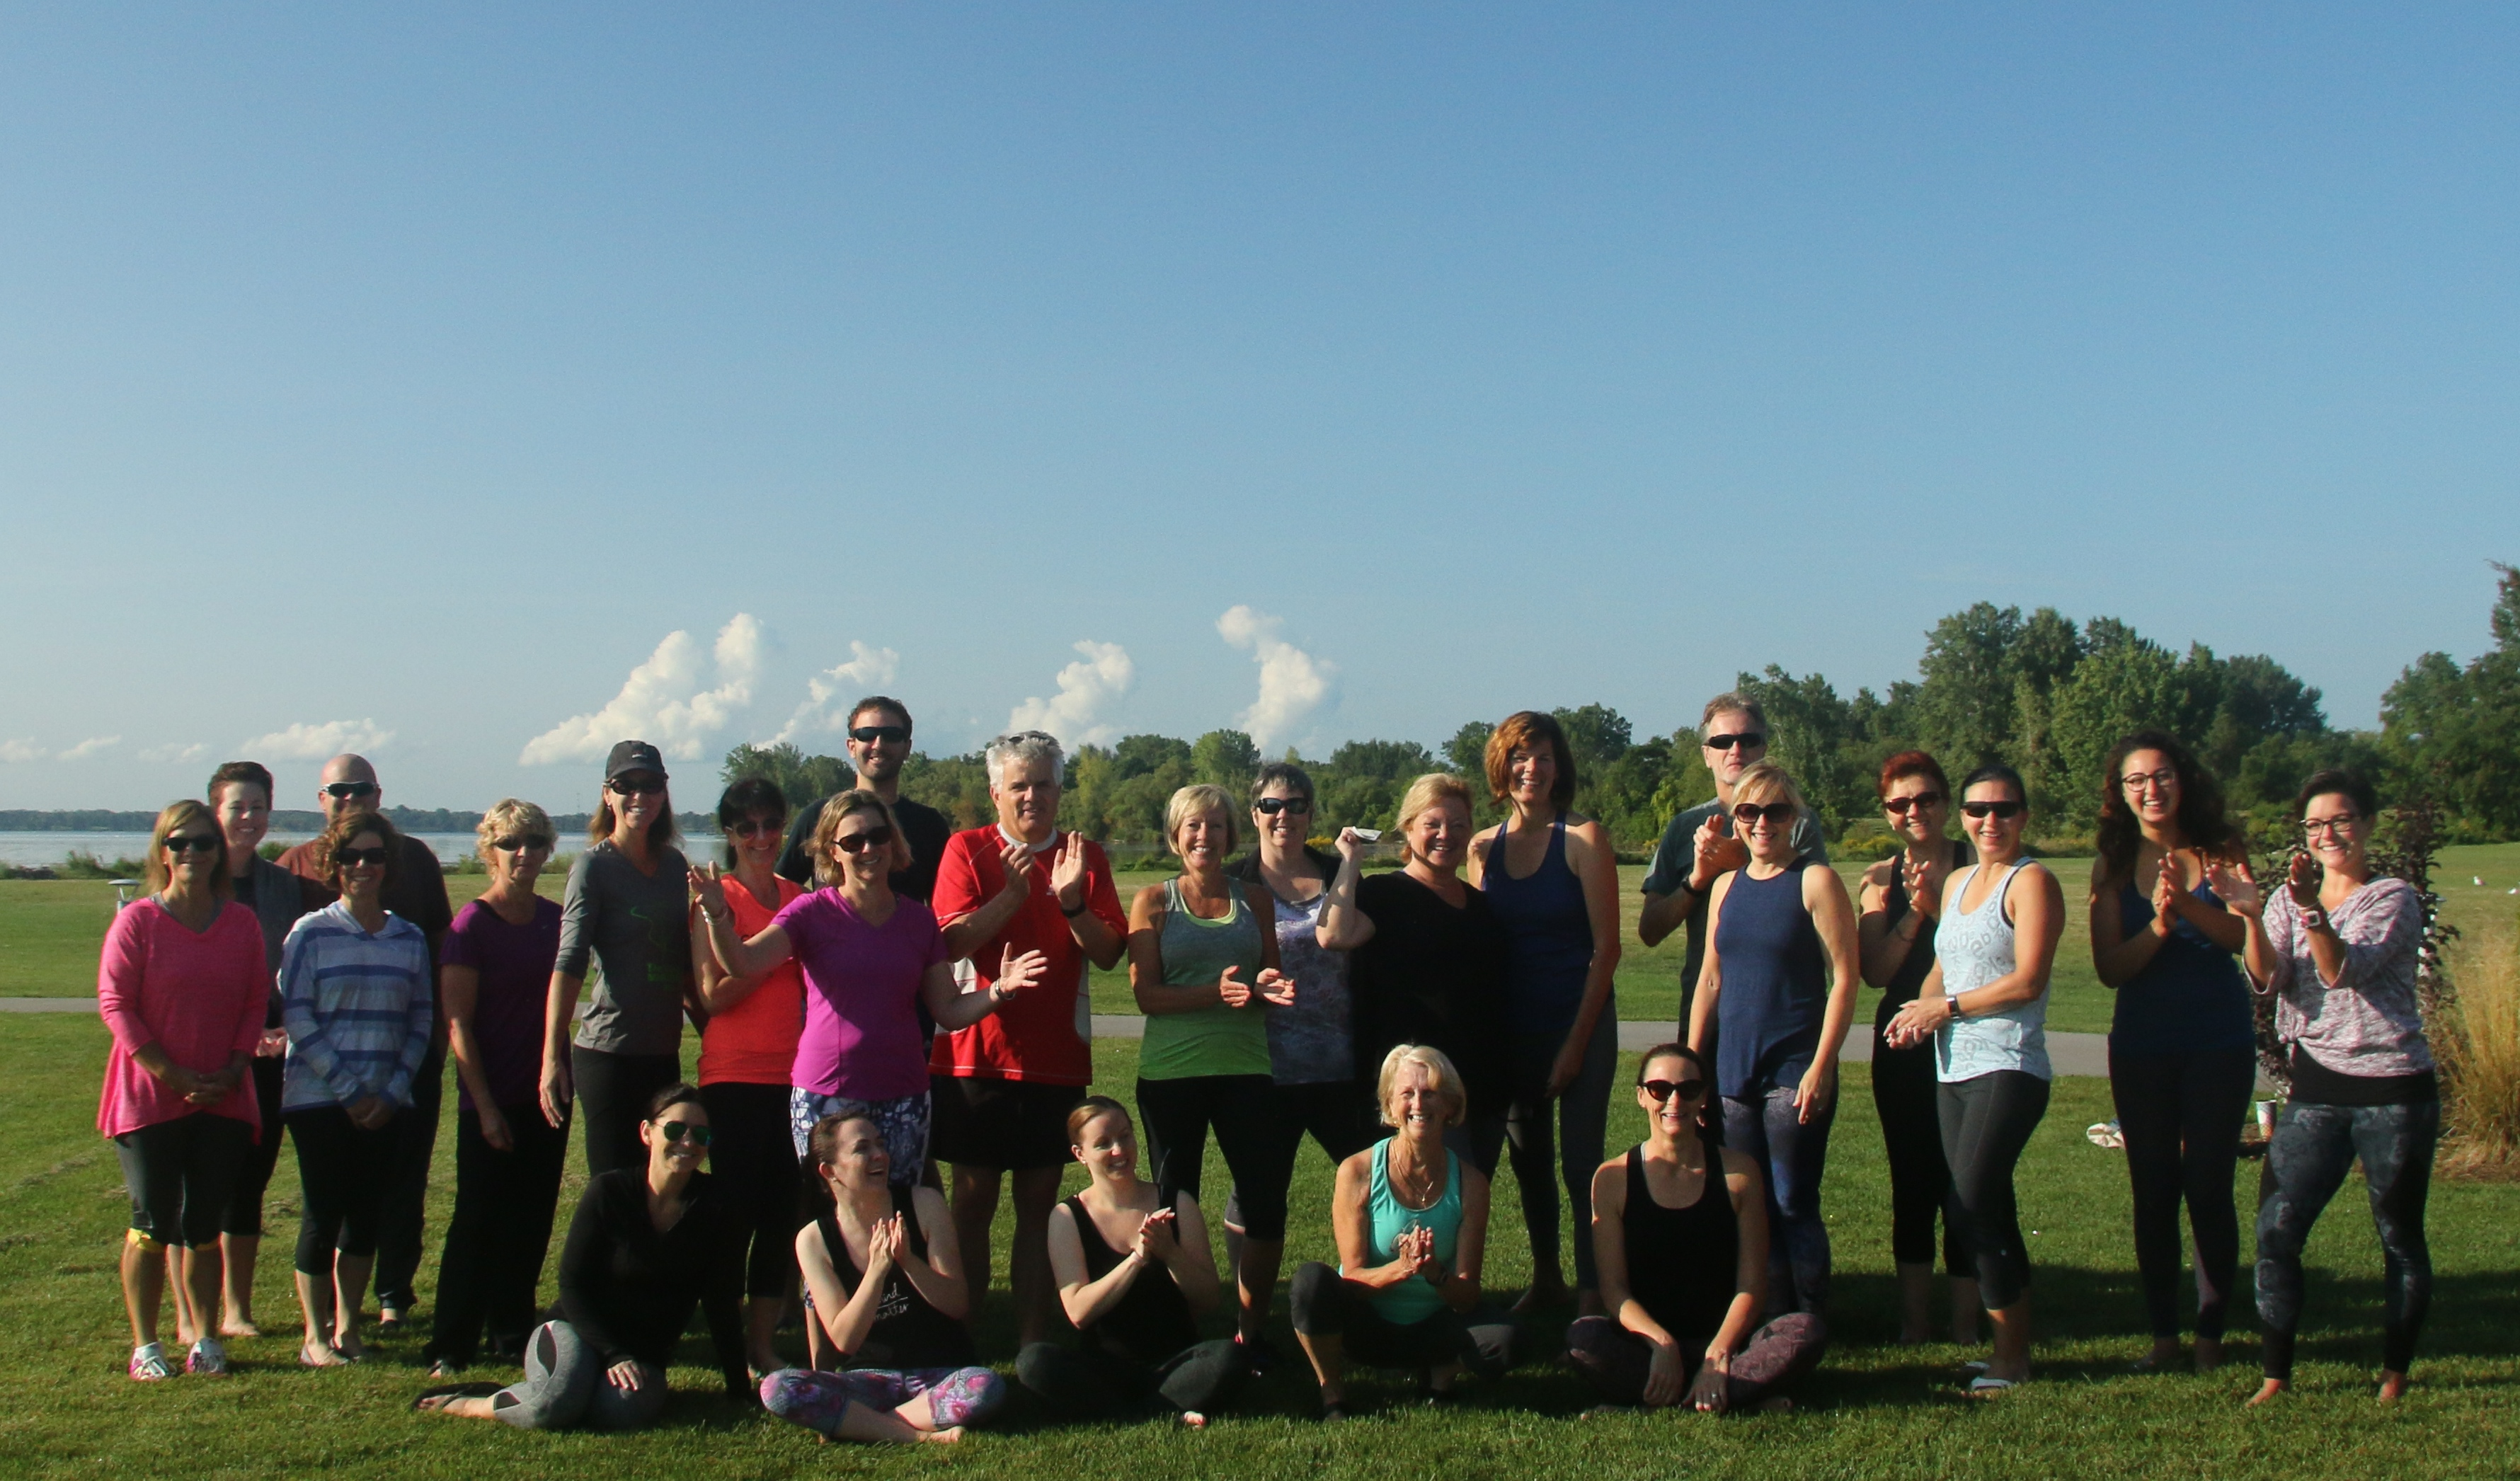 afe74280d2 We work with many local organizations in the Quinte area to foster improved  physical and mental health. Get Yoga is a community gathering place where  people ...